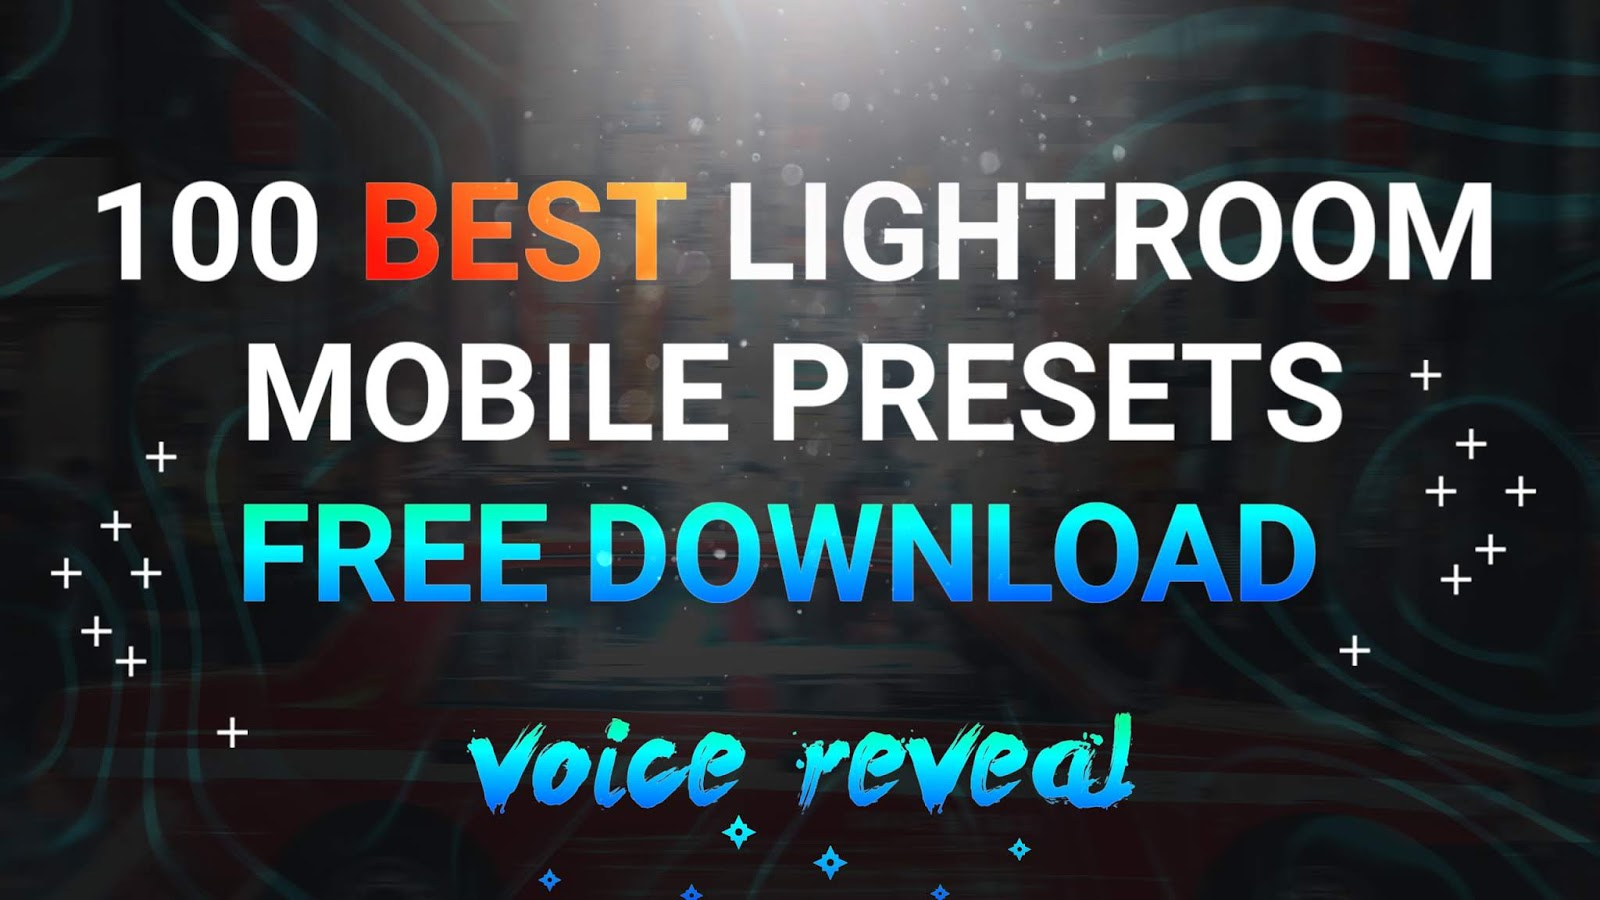 Free mobile presets